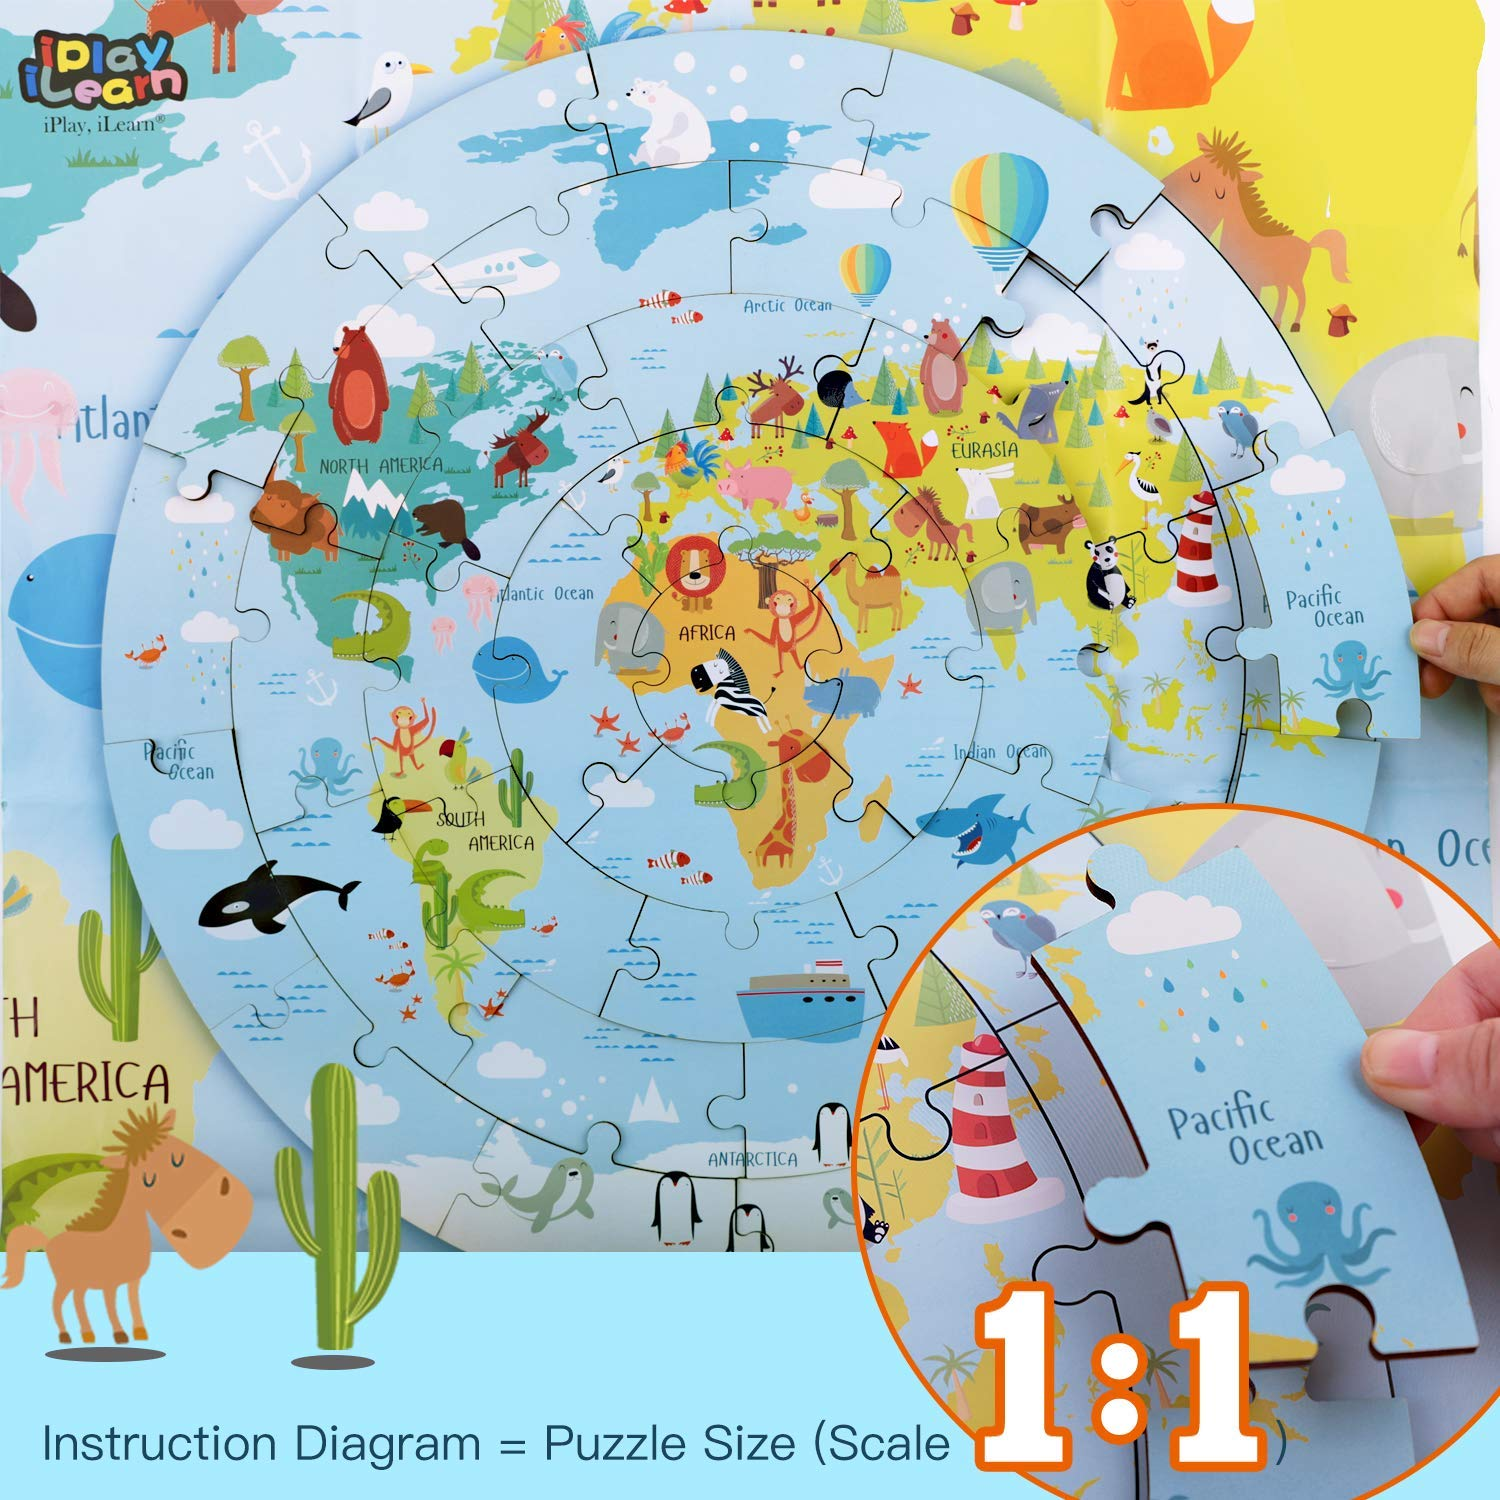 US $16.71 5% OFF|Kids Wooden World Map Jigsaw Puzzle Toy, Jumbo Floor on map making, map of hemispheres, map of earth, map of the seas, map of equator, map of cities, blank map continents, map of states, map of africa, map of the world, map of india, map of pangea, map of oceans, map of europe, map of canada, map of prime meridian, map of middle east, map of columbus voyage, map of china, map of landforms,